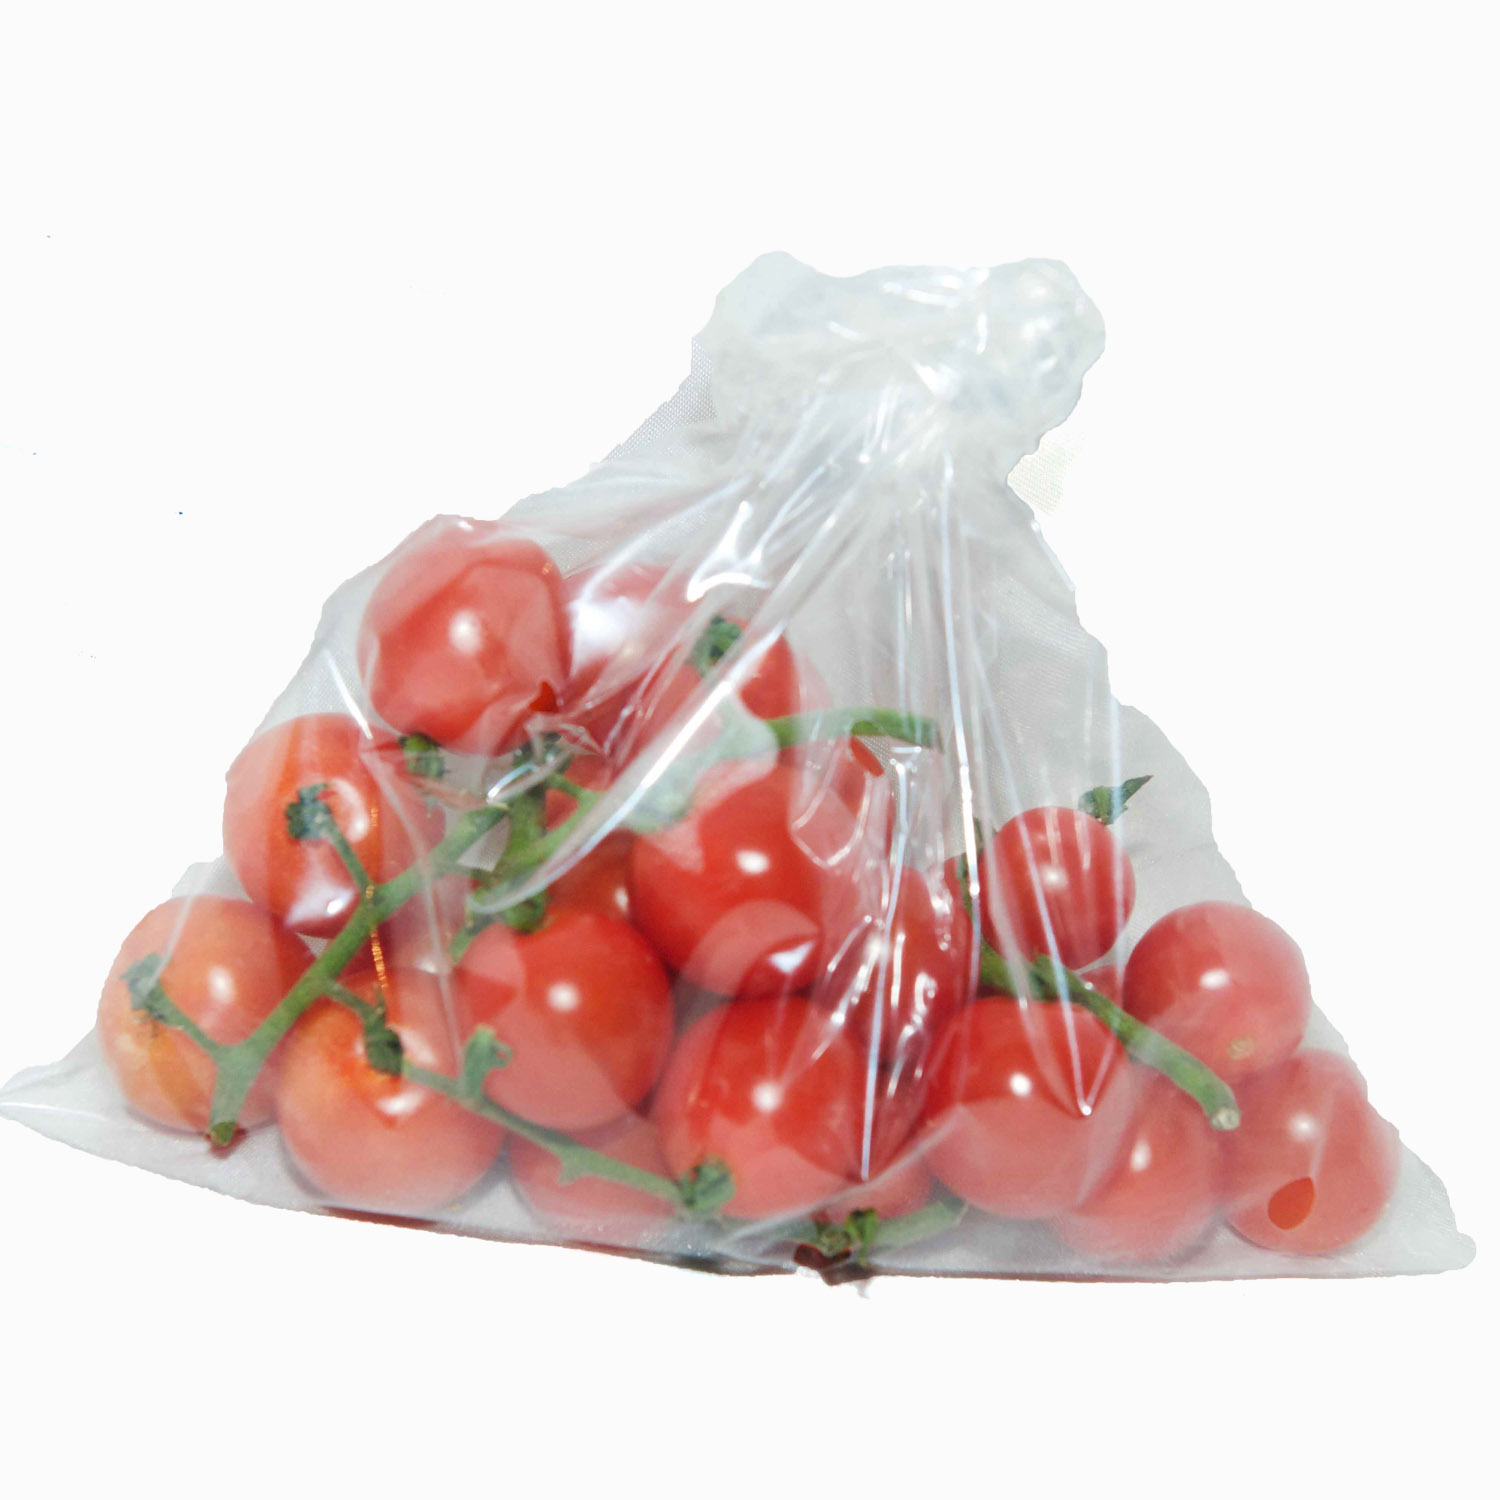 Cherry Tomatoes on the vine by Hydroponically Grown 300g